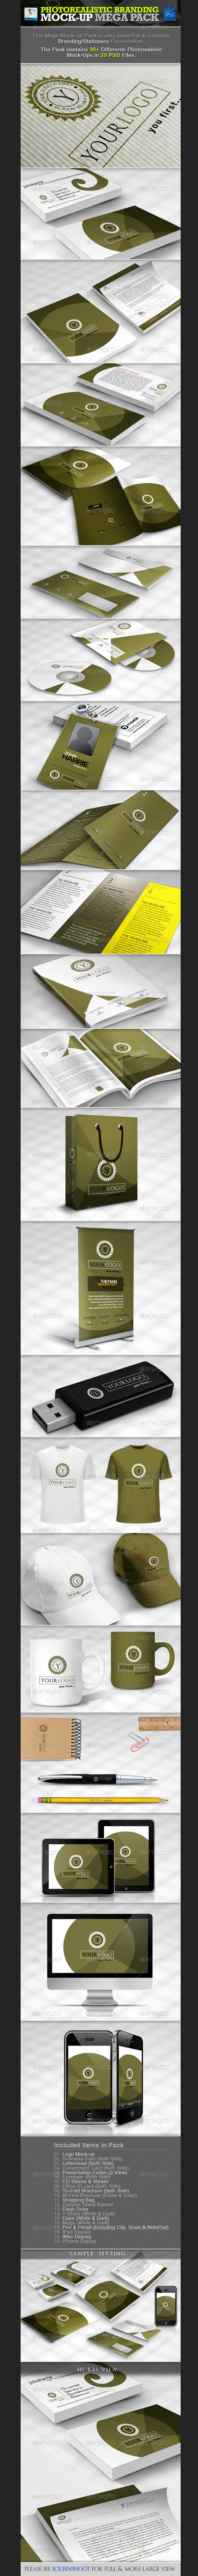 Photorealistic Branding Mock-up Mega Pack